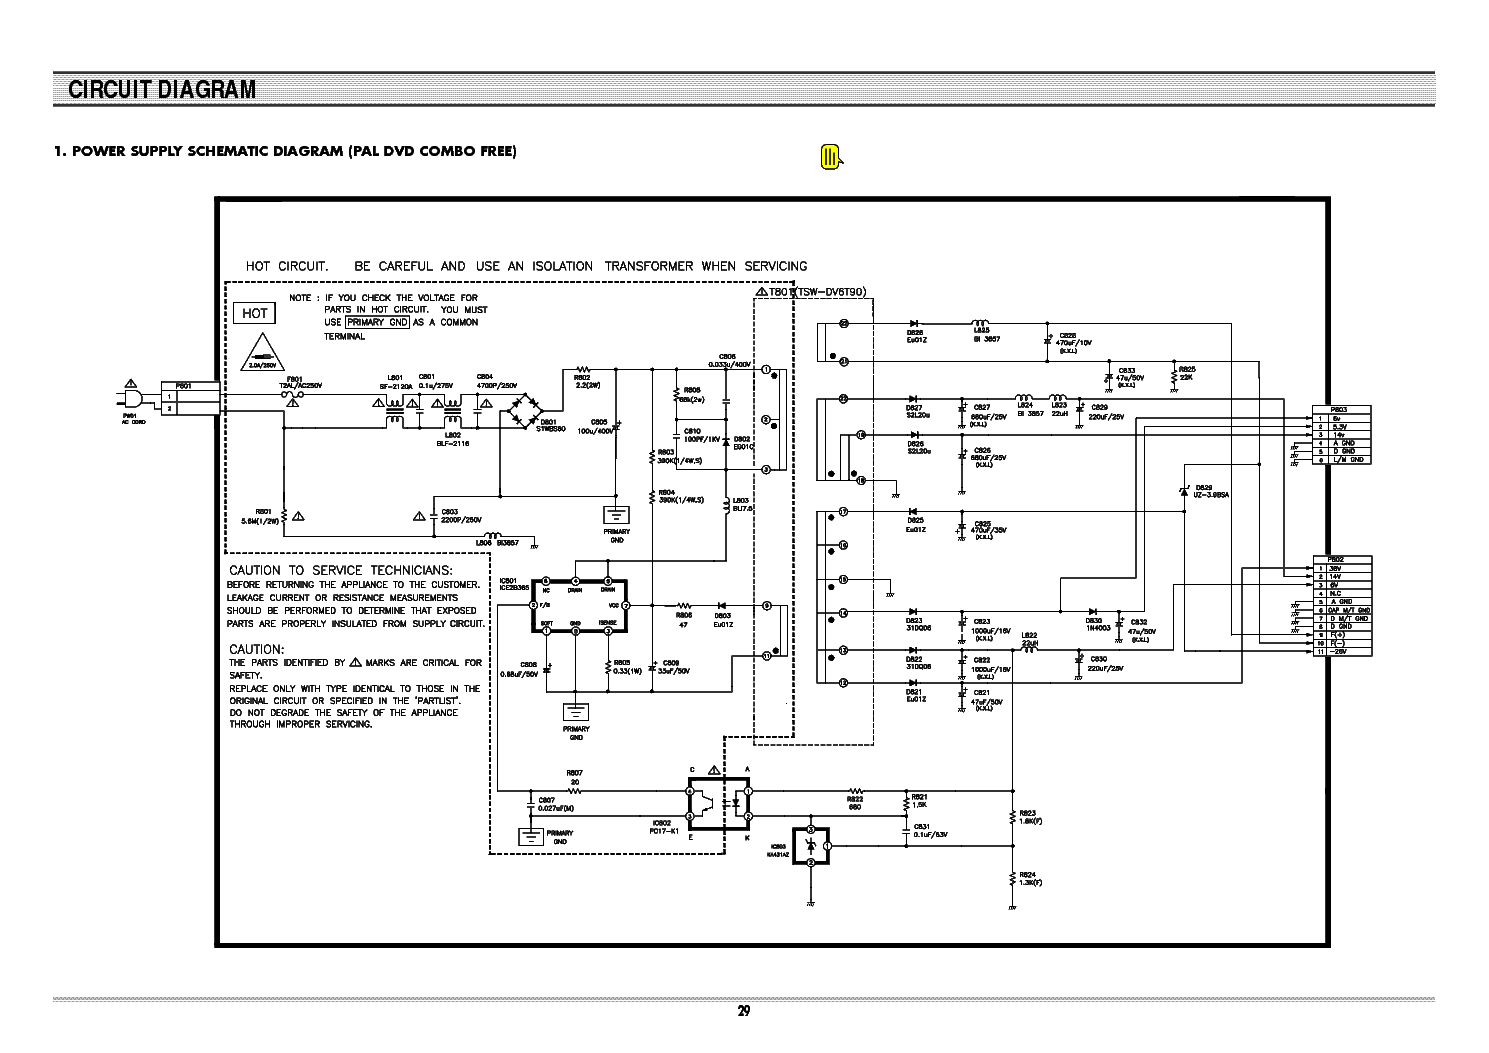 Daewoo Sd 8100 Sch Service Manual Download Schematics